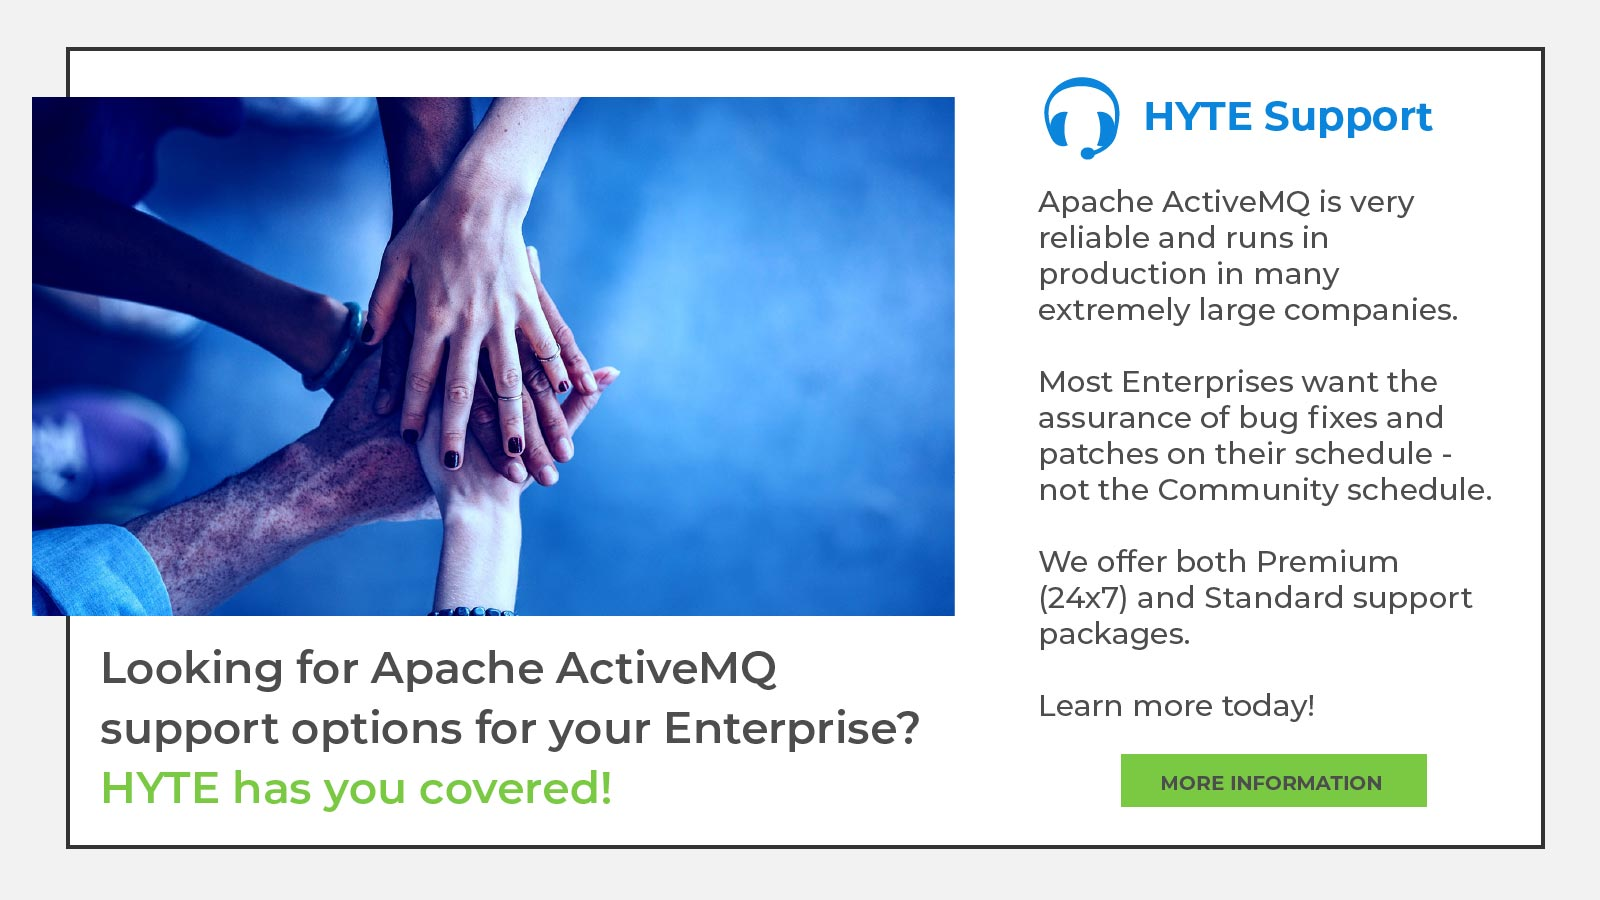 Looking for Apache ActiveMQ support options for your Enterprise? HYTE has you covered! Apache ActiveMQ is very reliable and runs in production in many extremely large companies. Most Enterprises want the assurance of bug fixes and patches on their schedule - not the Community schedule. We offer both Premium (24x7) and Standard support packages. Learn more today!